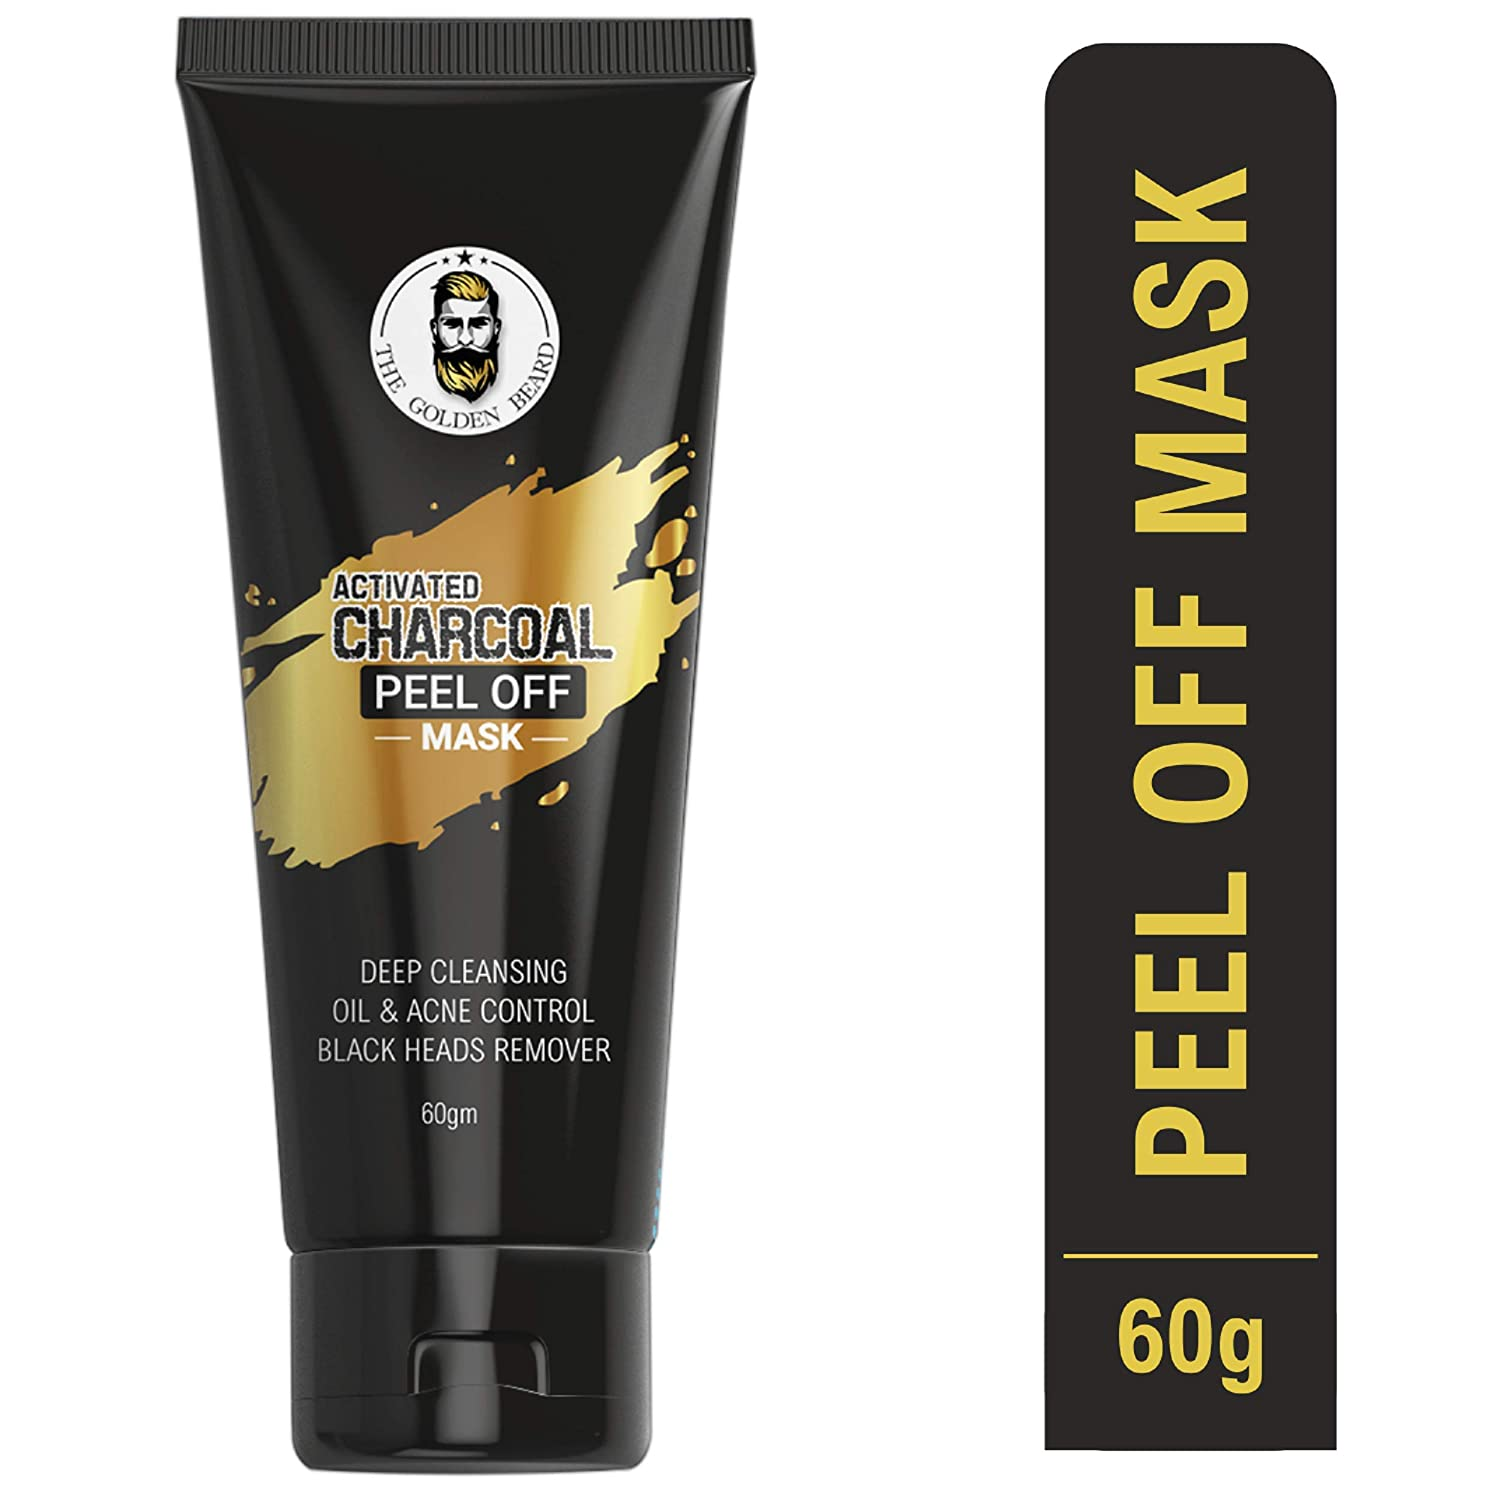 The Golden Beard Charcoal Peel Off Mask | Deep skin cleansing Mask | 60gm